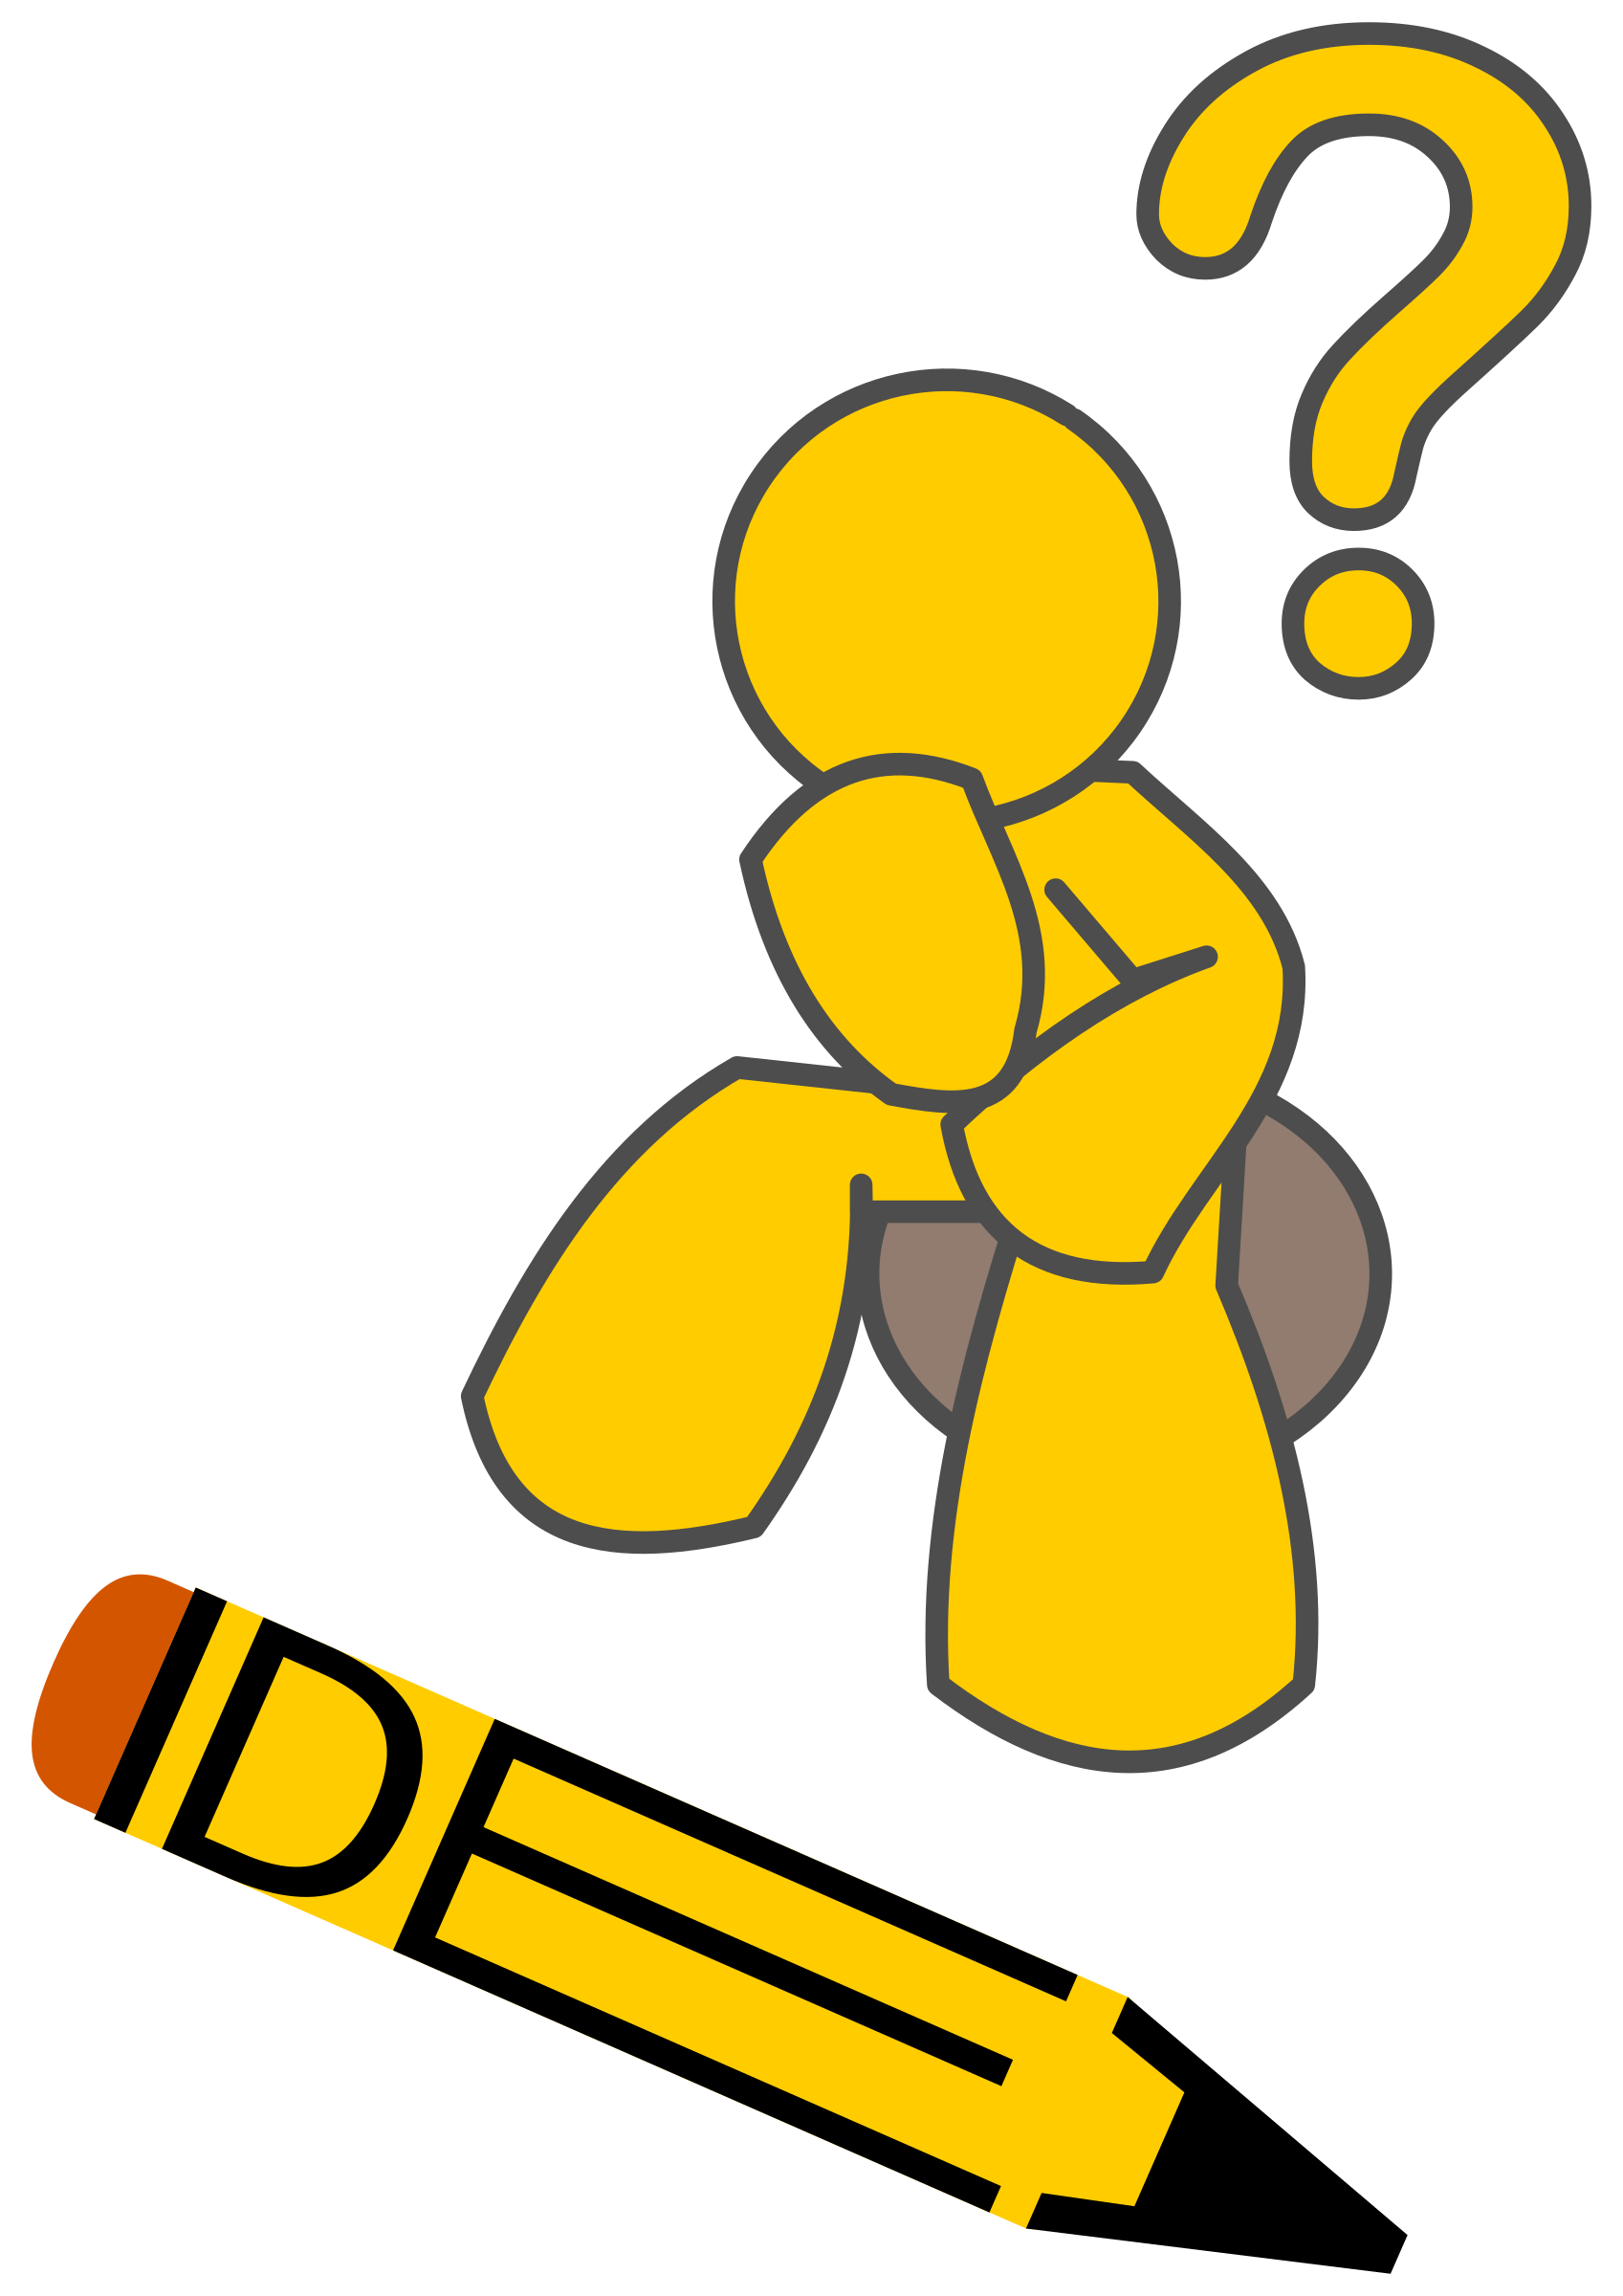 Idea big image png. Clipart writing writing prompts